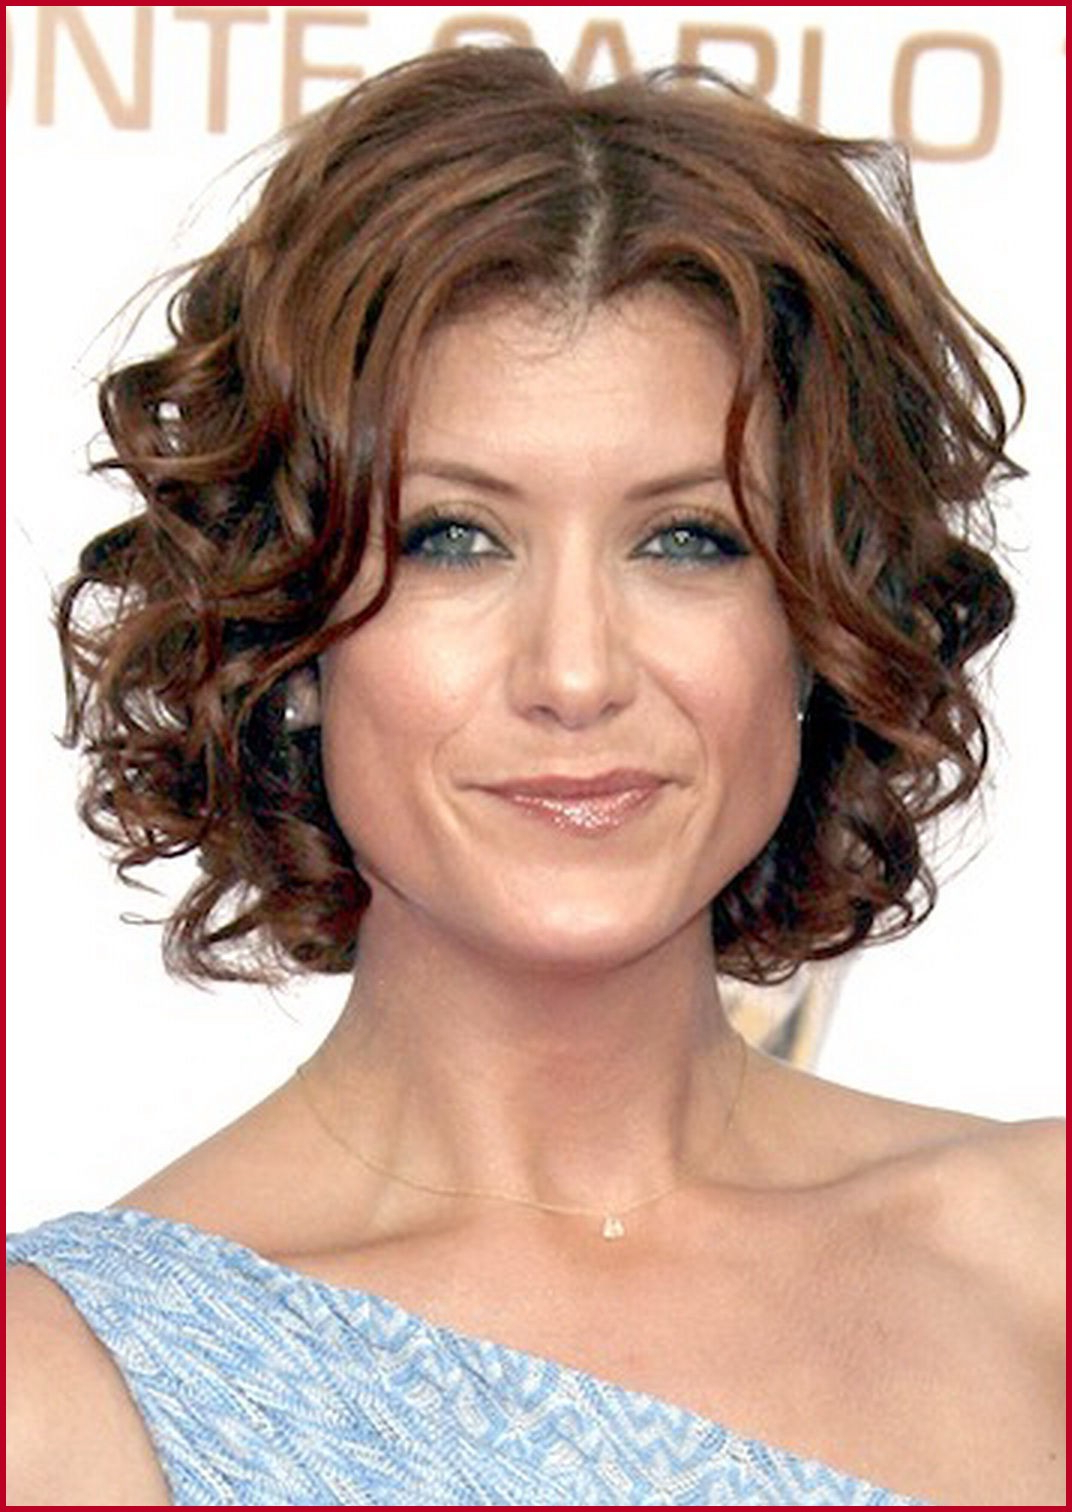 Hairstyles For Short Curly Fine Hair 336509 2017 Short Hairstyles Throughout Short Hairstyles For Round Faces And Thin Fine Hair (View 18 of 25)